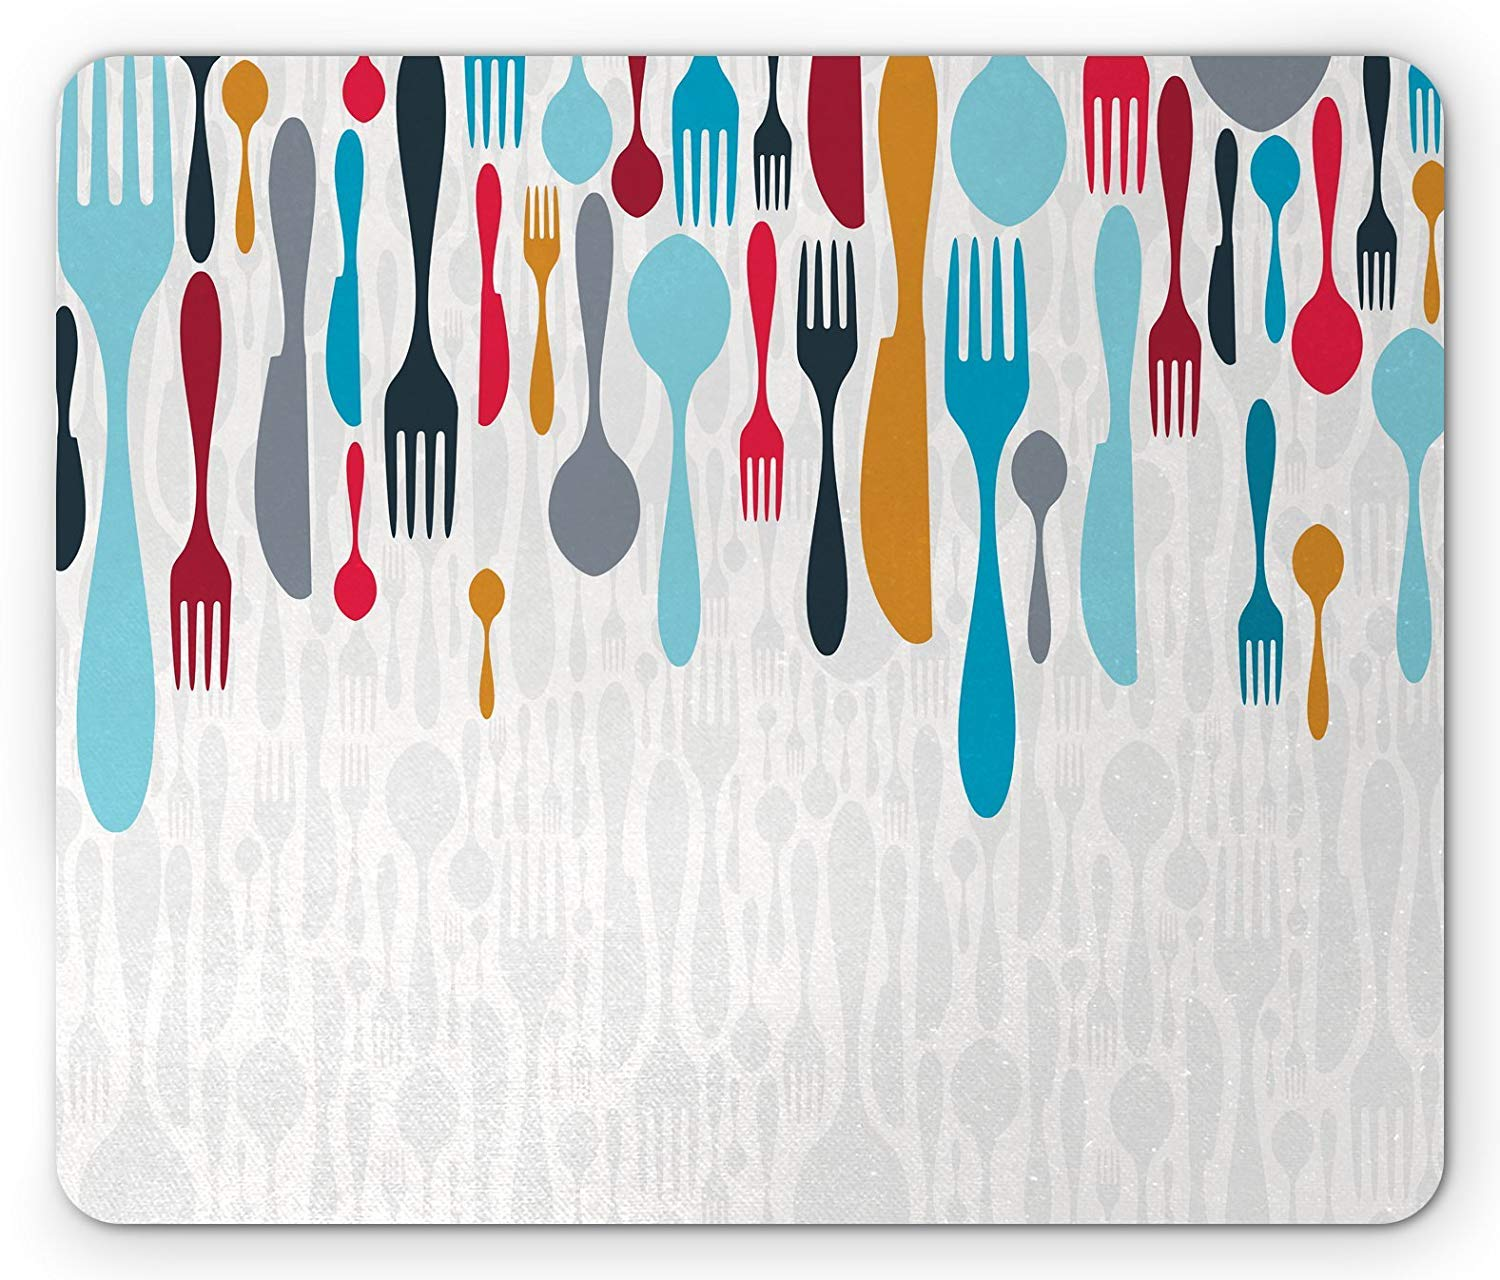 Amazoncom Colorful Mouse Pad Colorful Cutlery Background 1500x1280